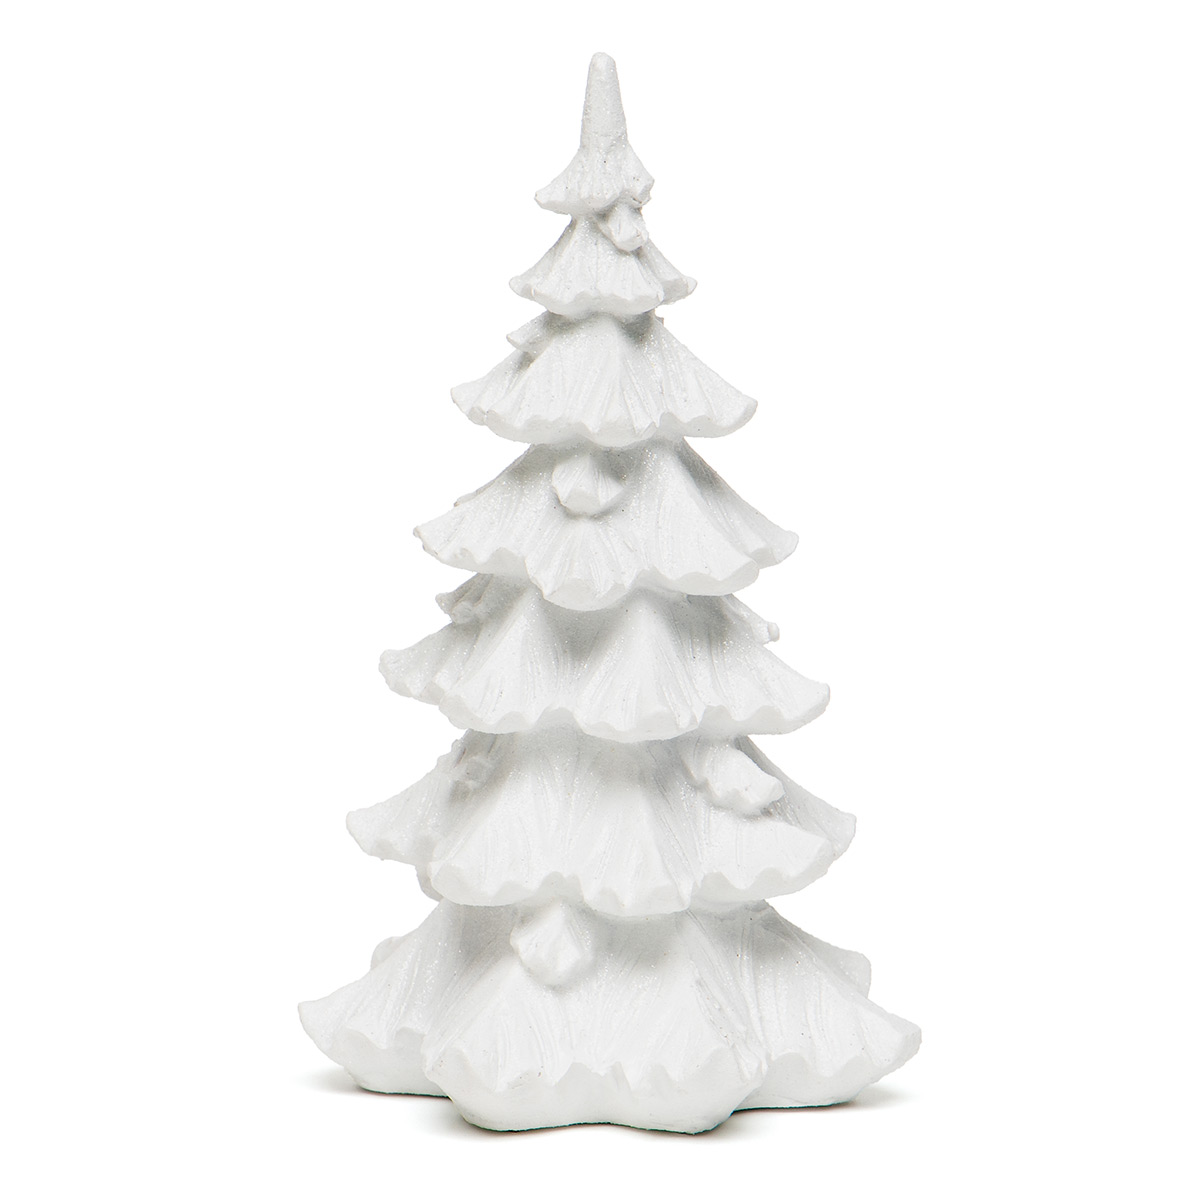 "MINI RESIN TREE WHITE WITH GLITTER/MICA LARGE 4""X7.5"""